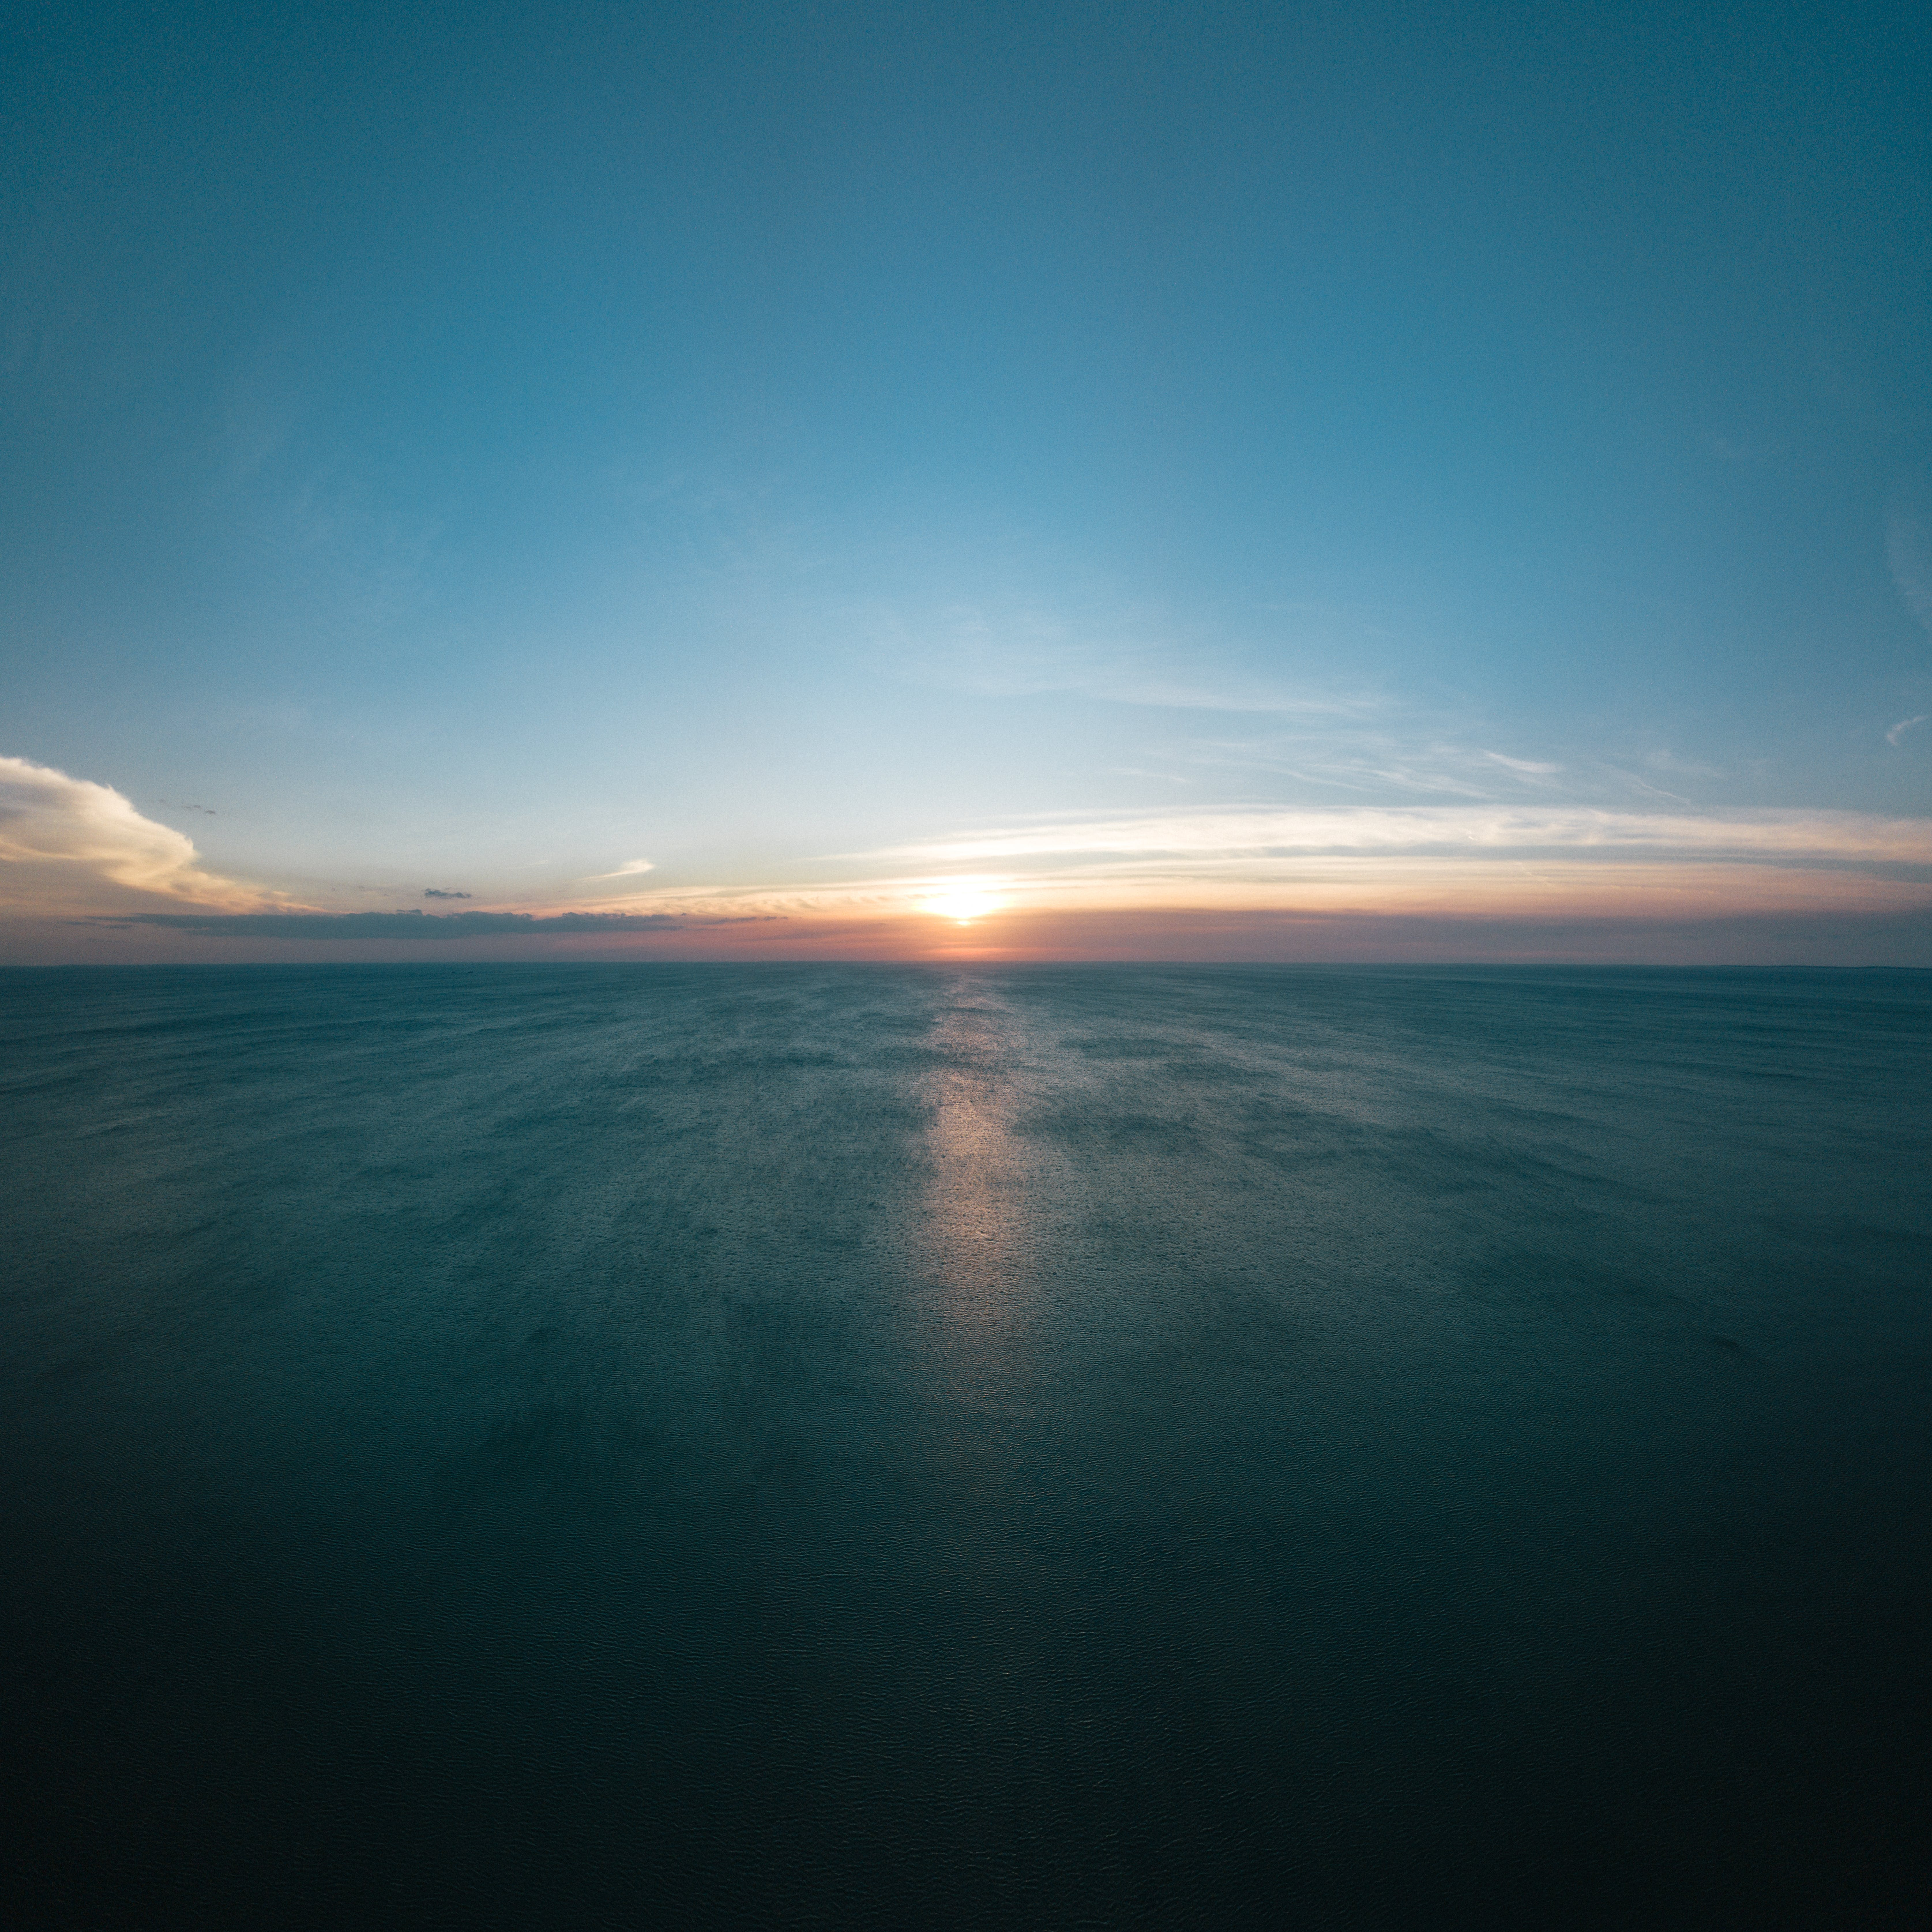 Landscape Photo of Sea during Golden Hour